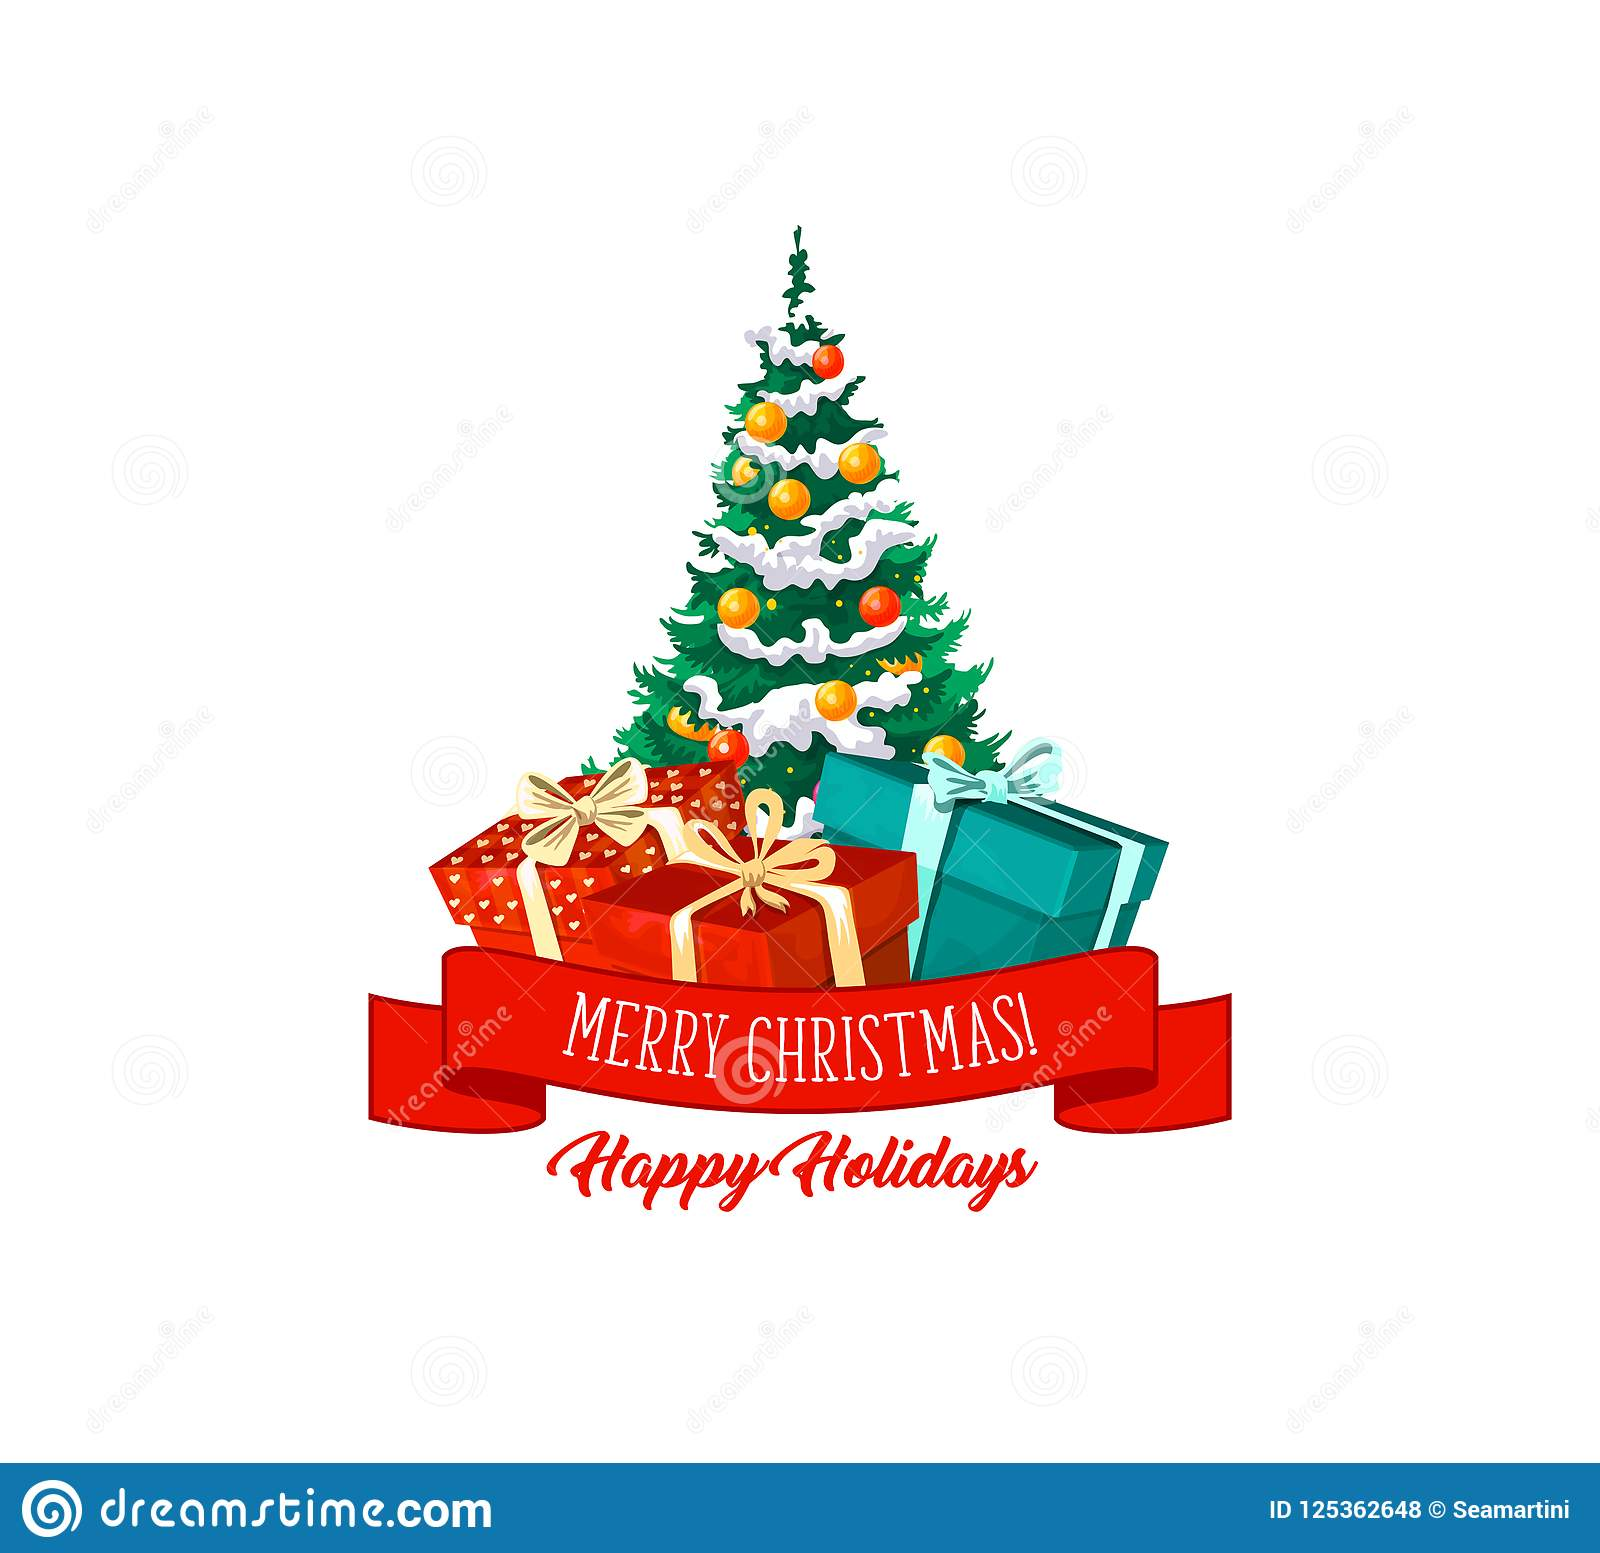 download christmas tree gifts and decorations vector icon stock vector illustration of holly seasonal